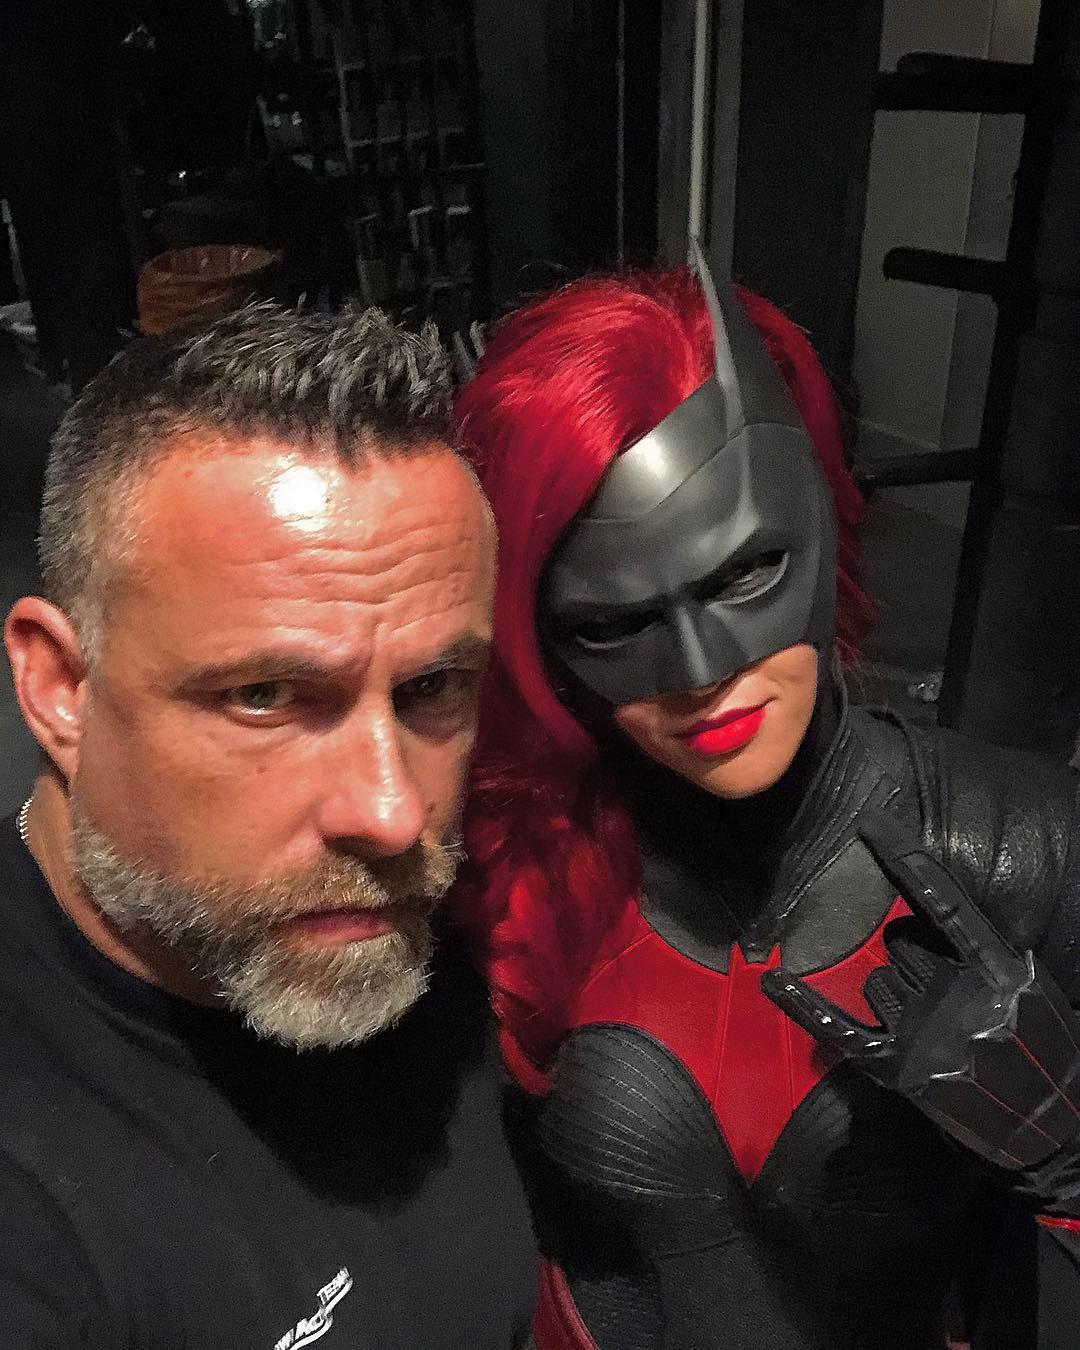 As filming continues on the Elseworlds crossover for The CW